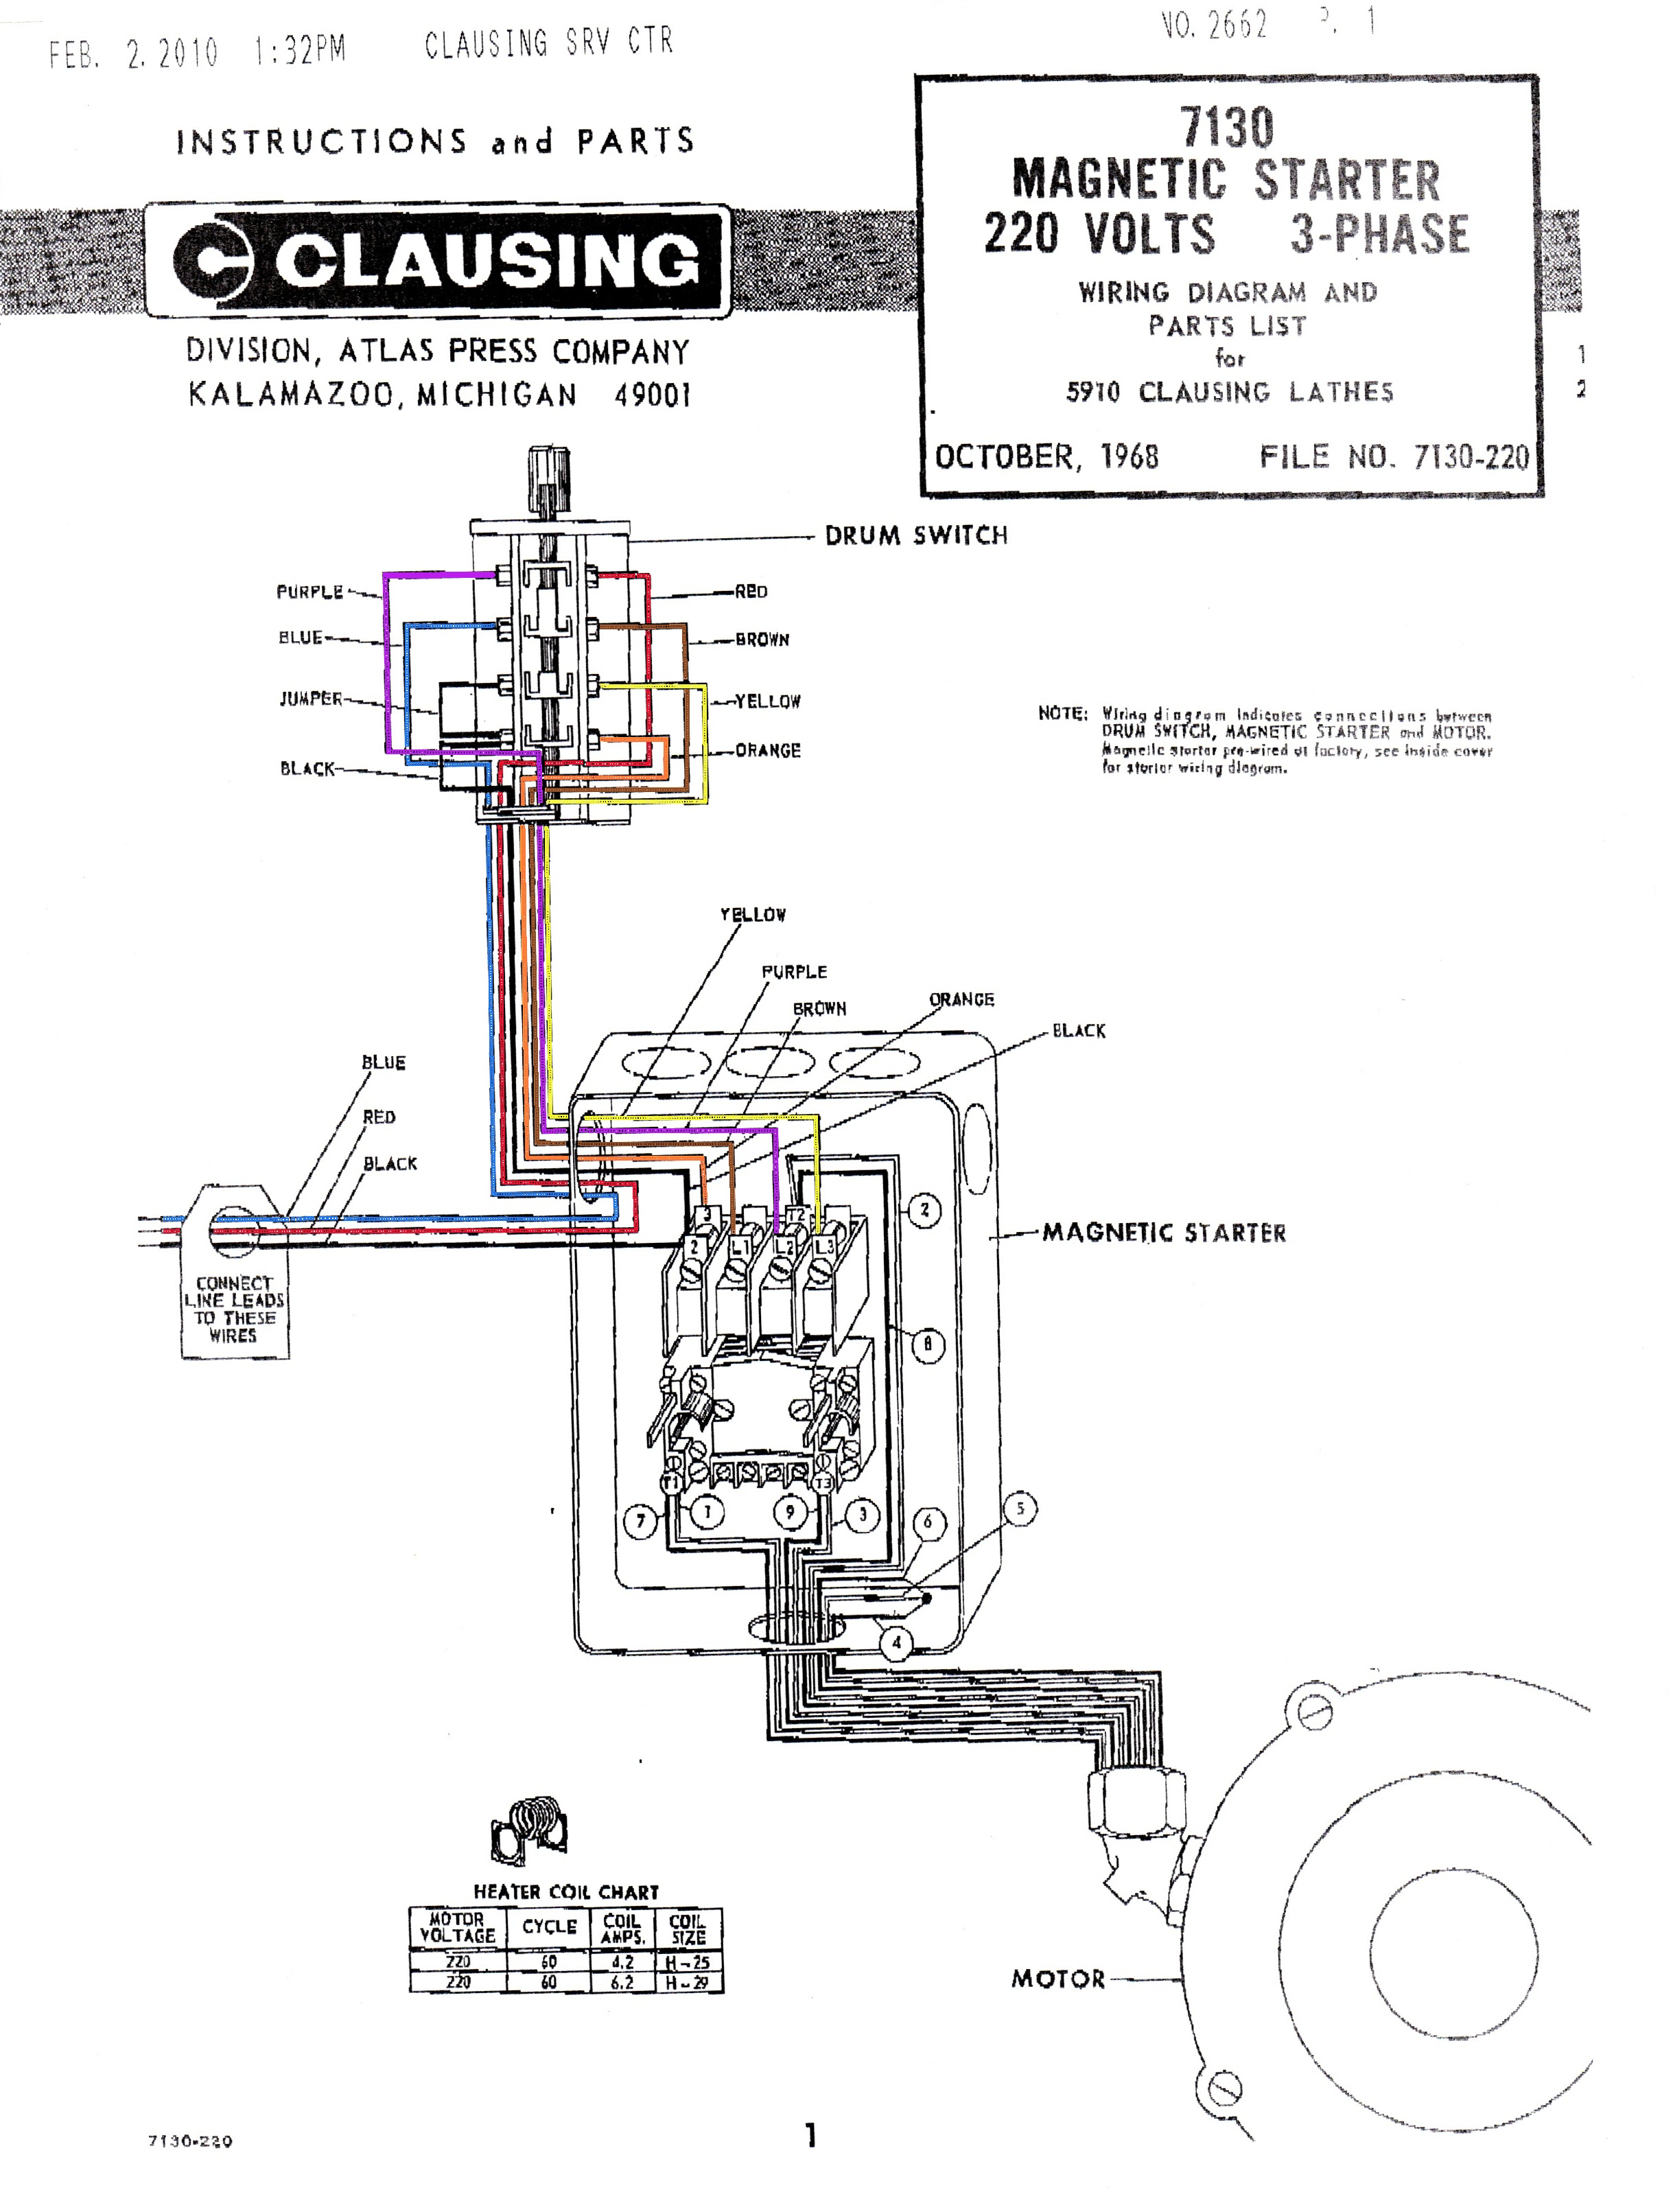 7130 Magnetic Starter Wiring Diagram Color starter wiring diagrams mag wiring diagrams instruction starter wiring diagram at mifinder.co